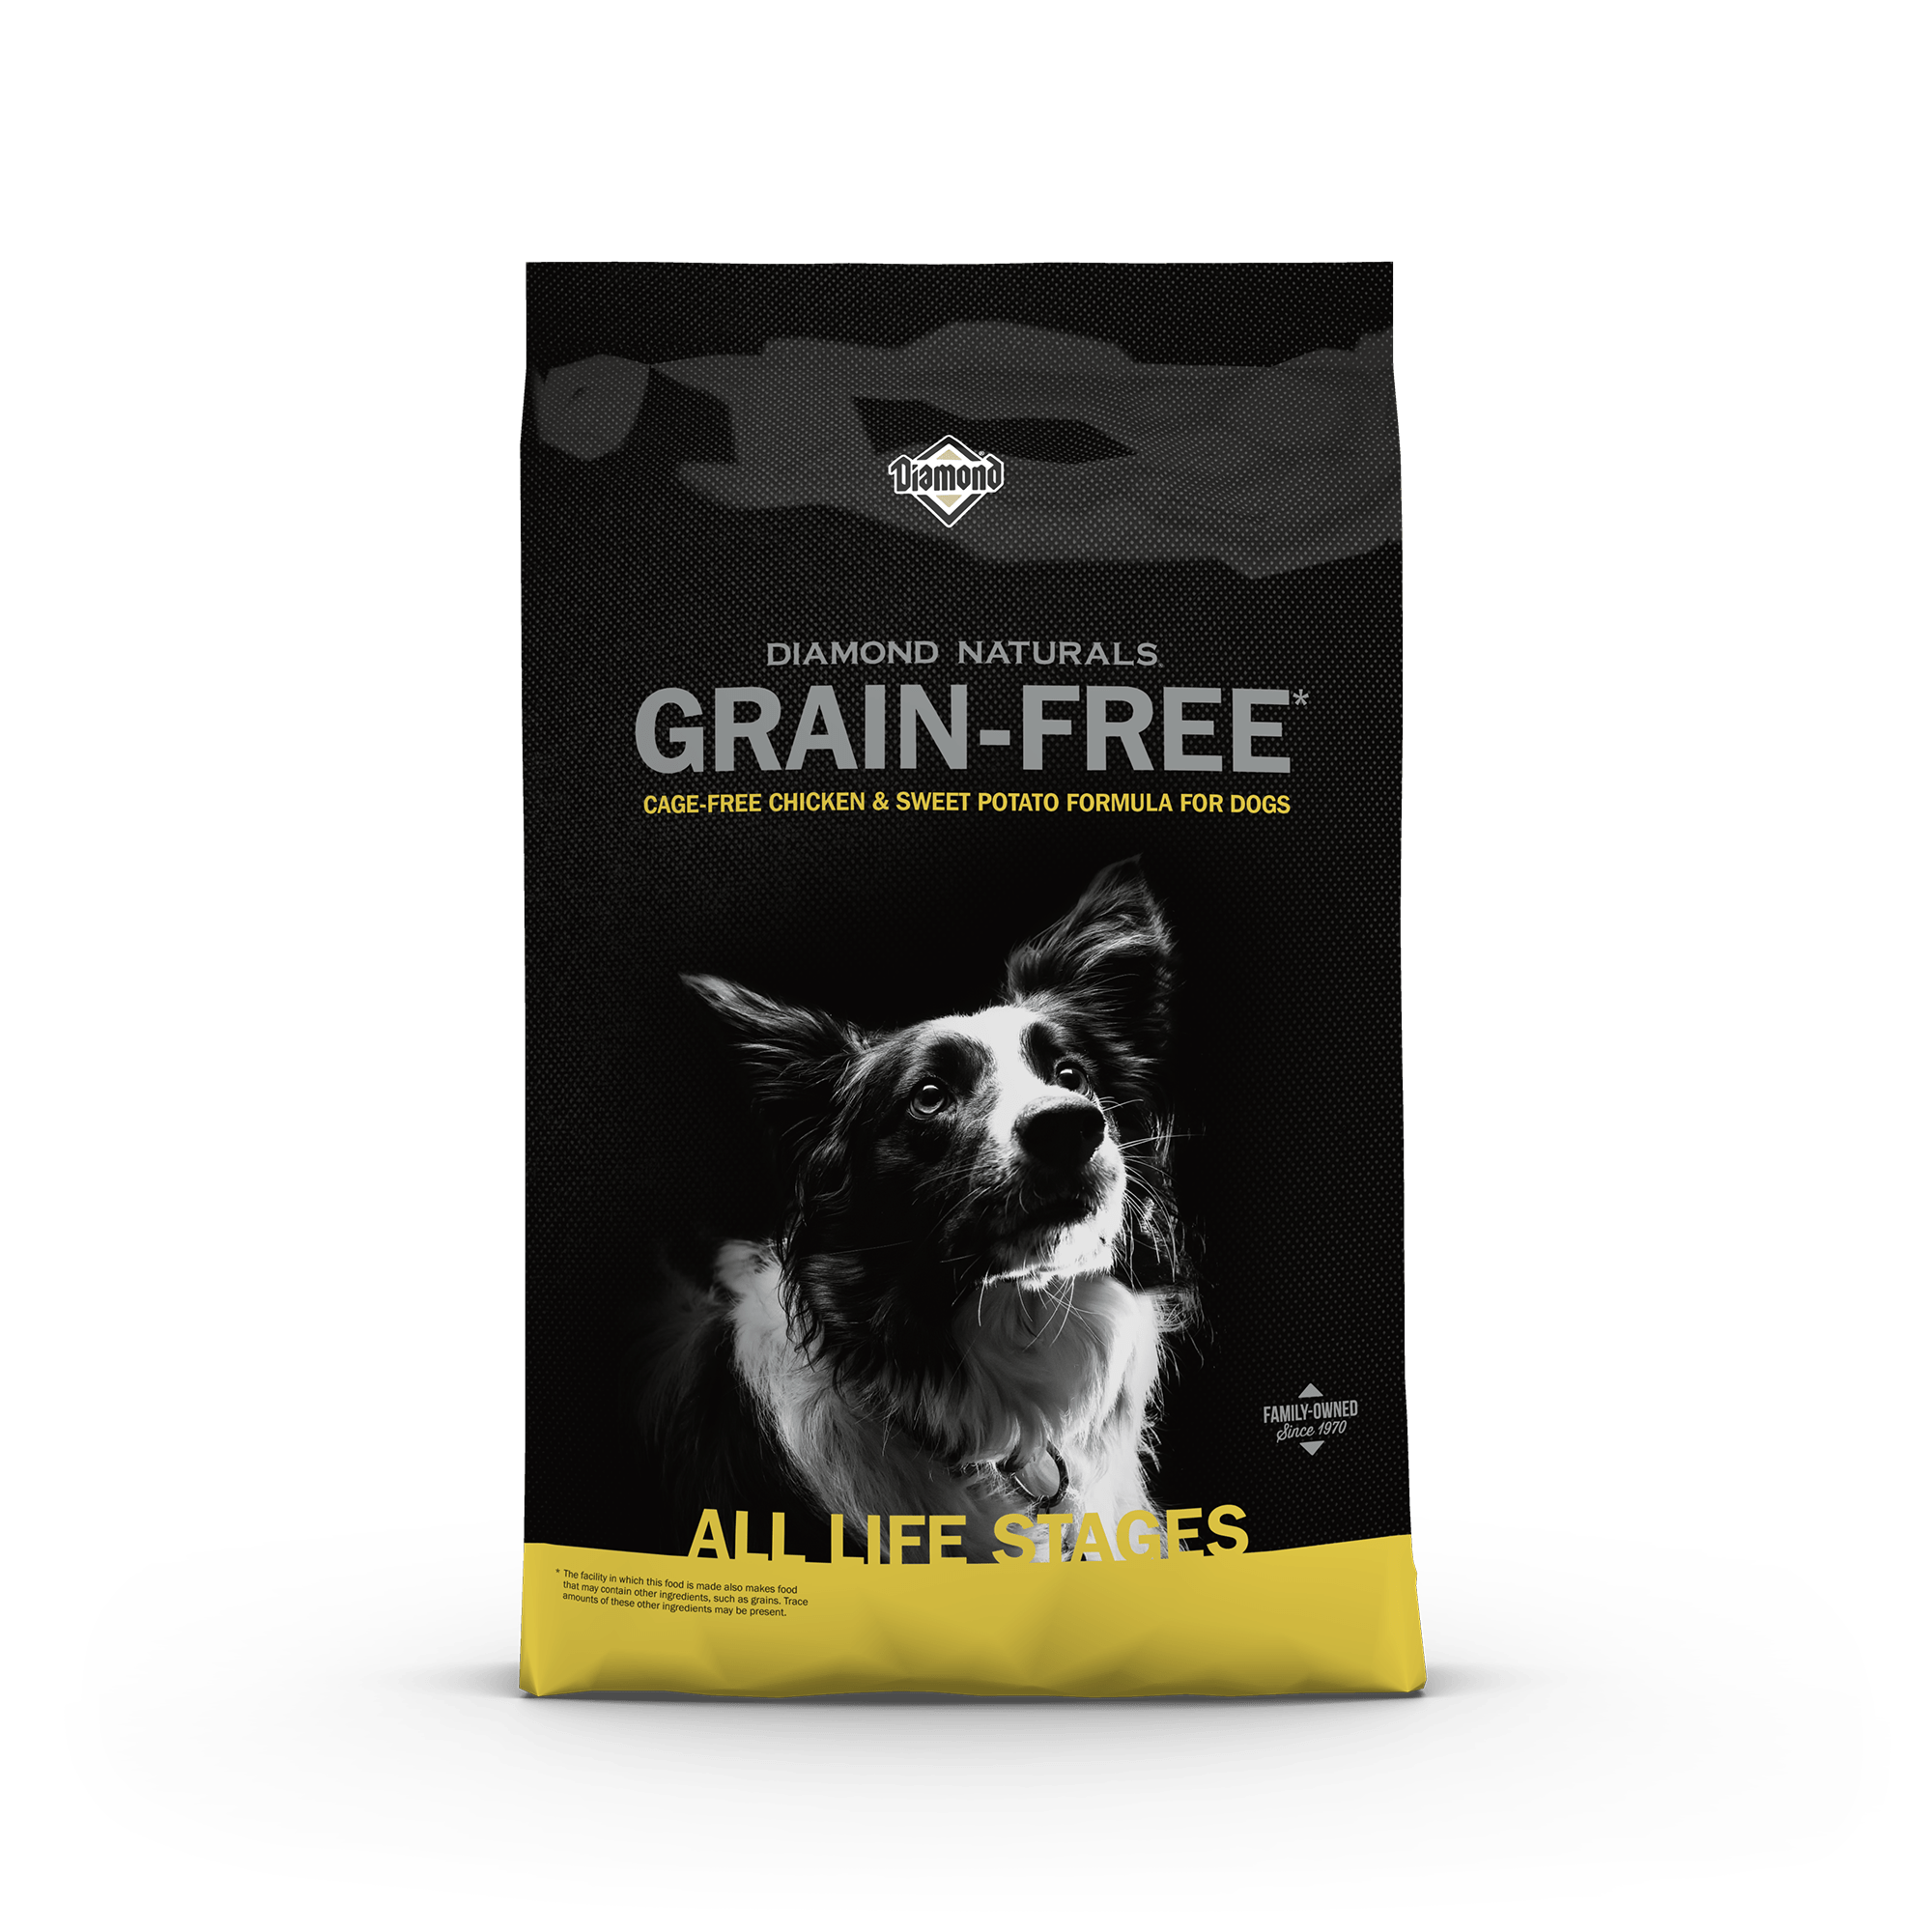 Cage-Free Chicken & Sweet Potato Formula for Dogs product packaging